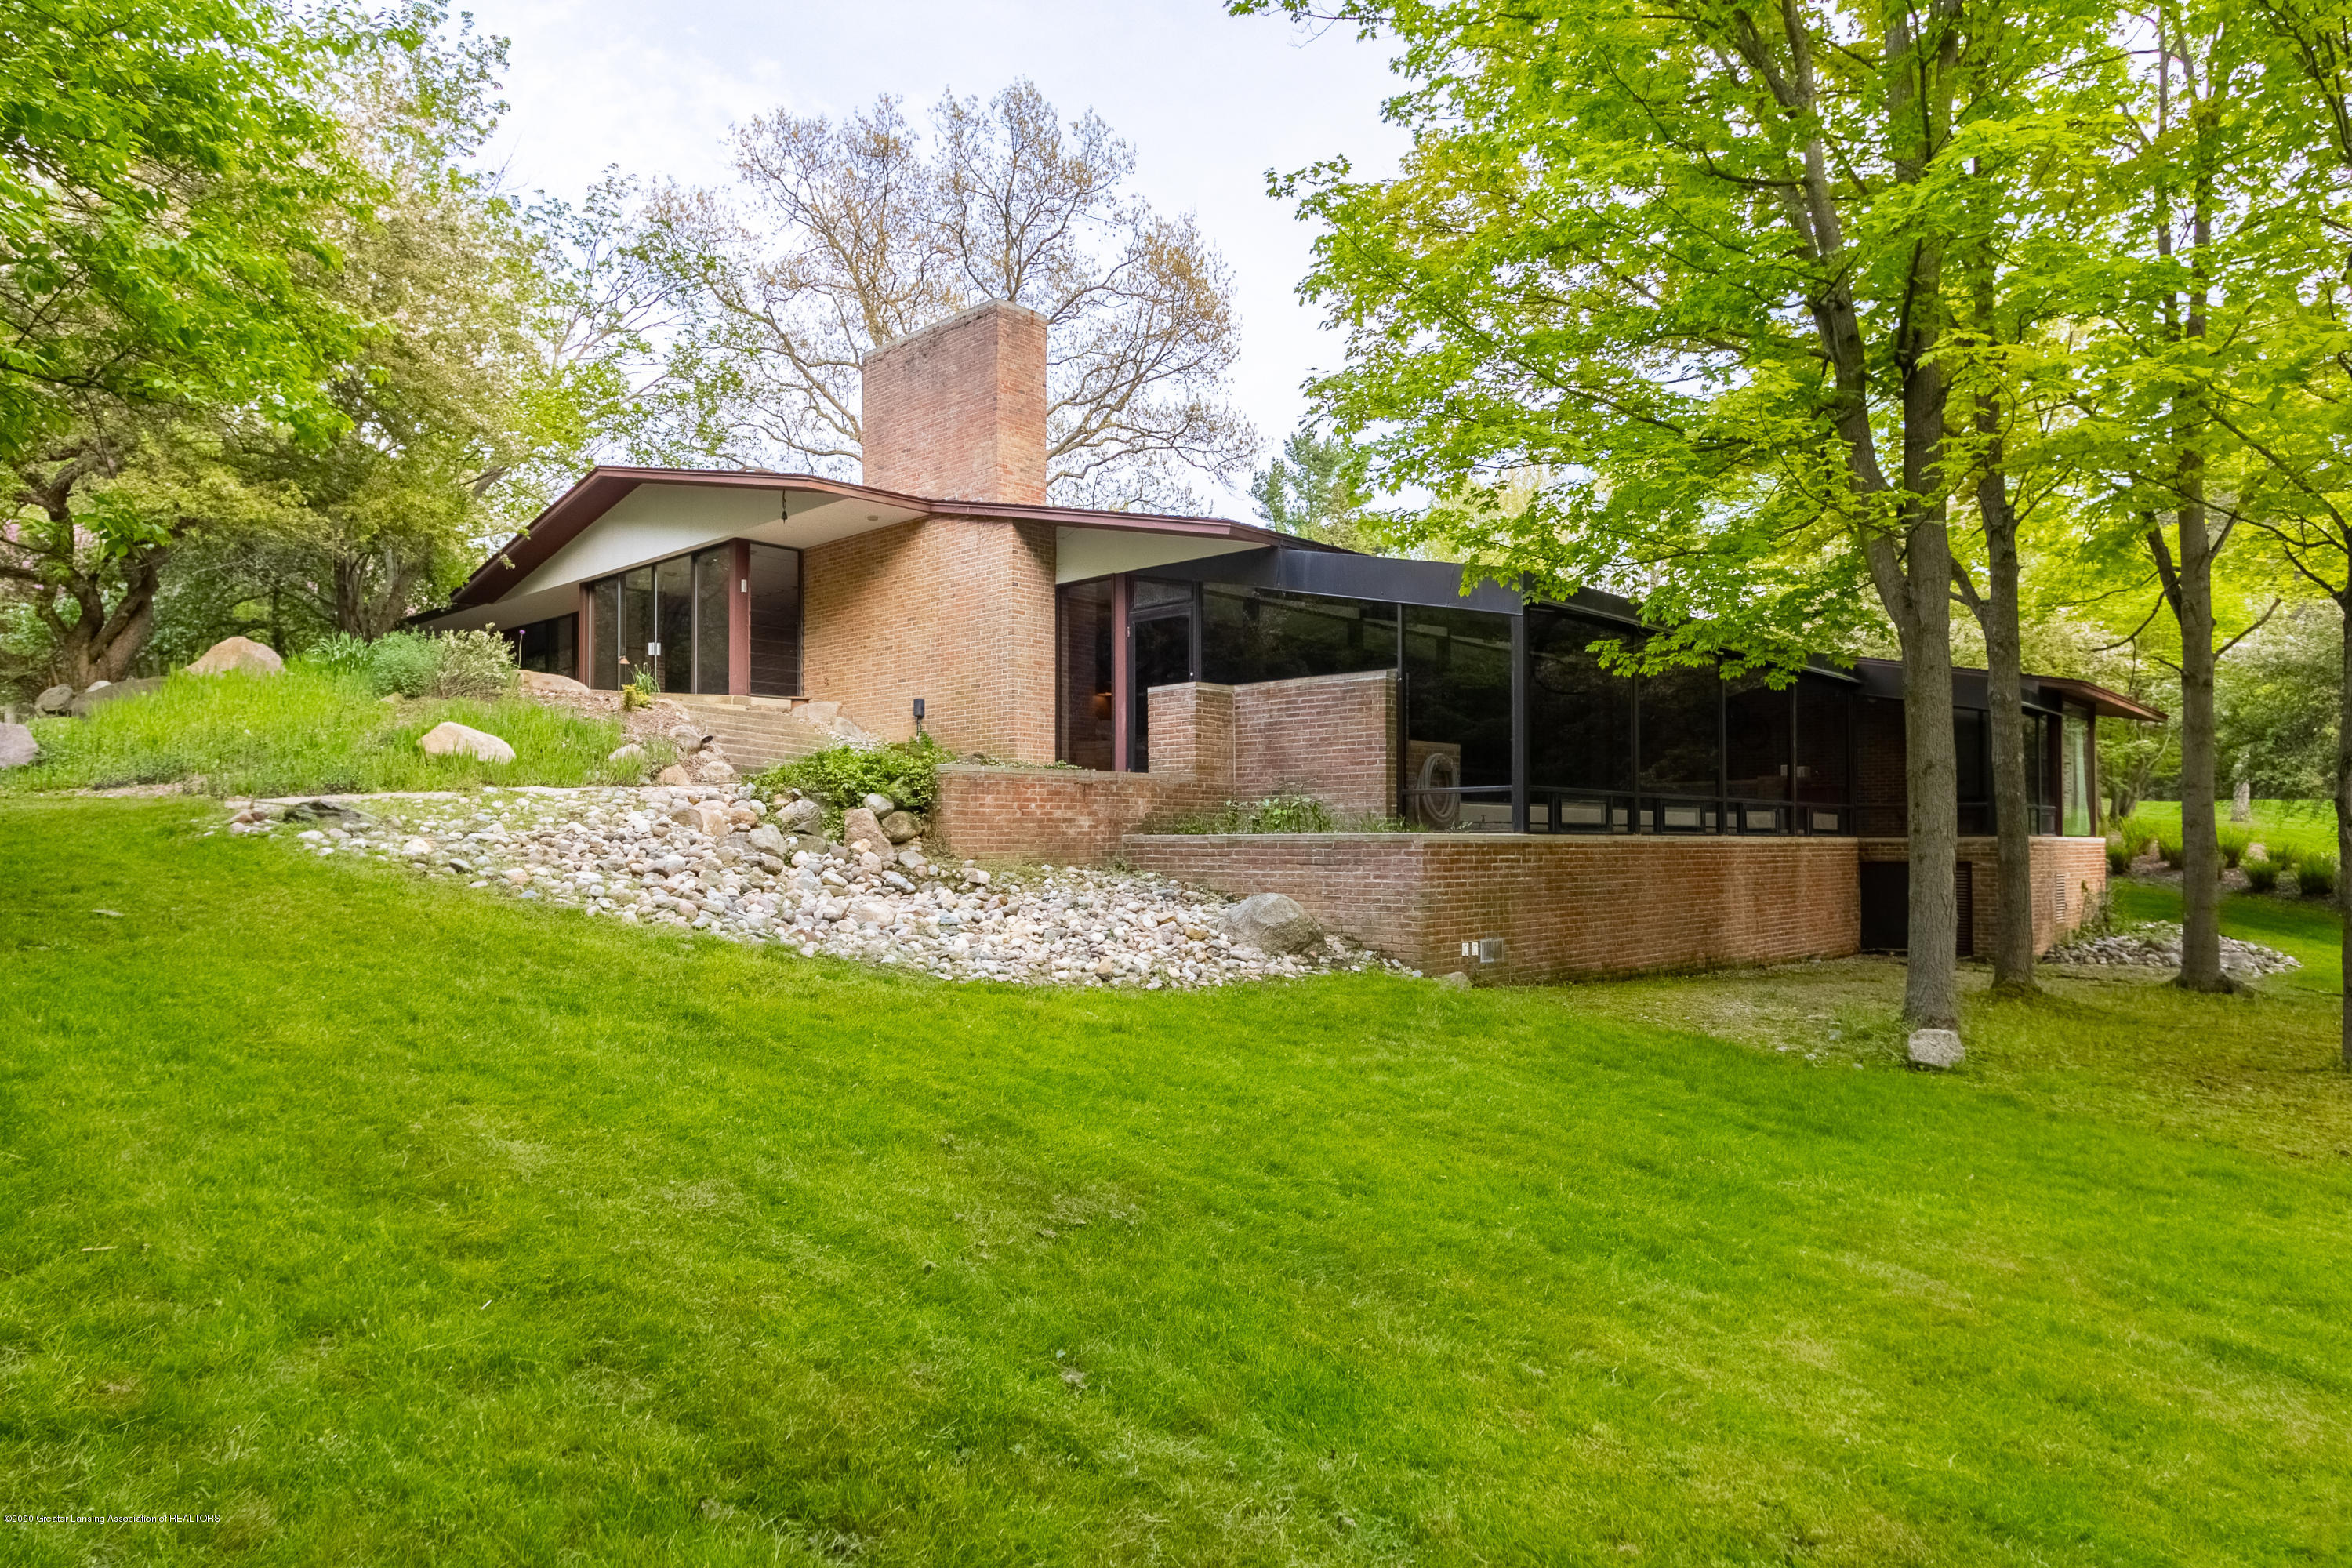 1172 Wrightwind Dr - Side View - 8